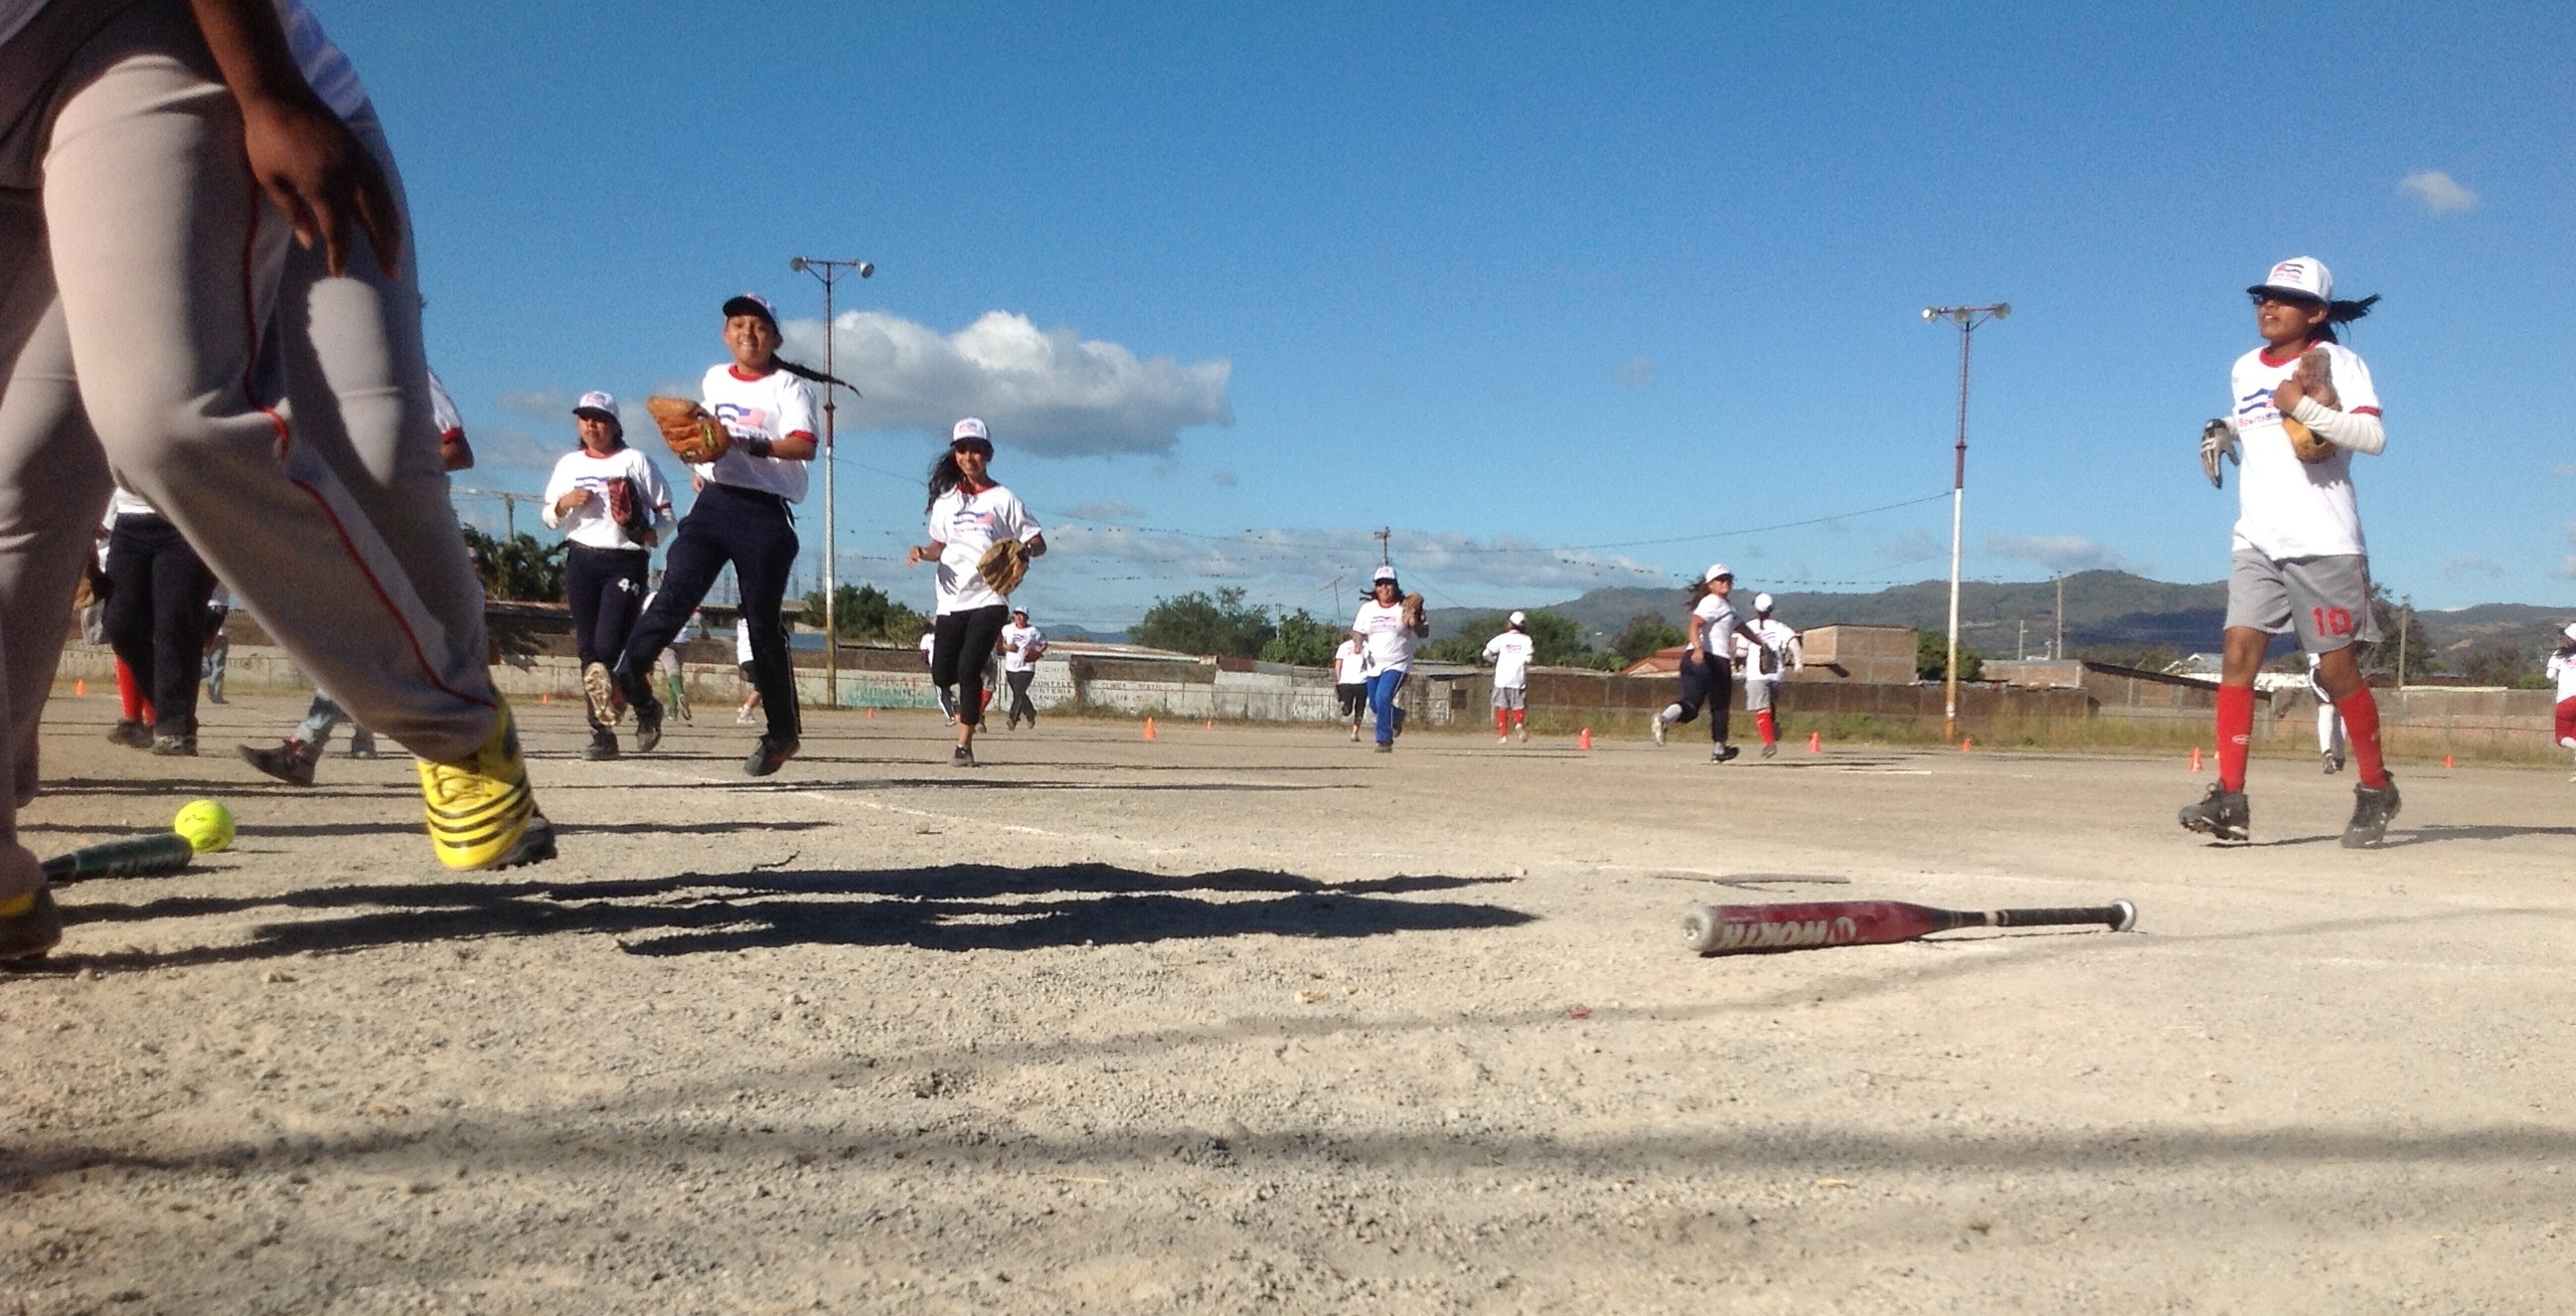 After a fun game of softball with the sports envoys, a team of teenage girls trot off the field.